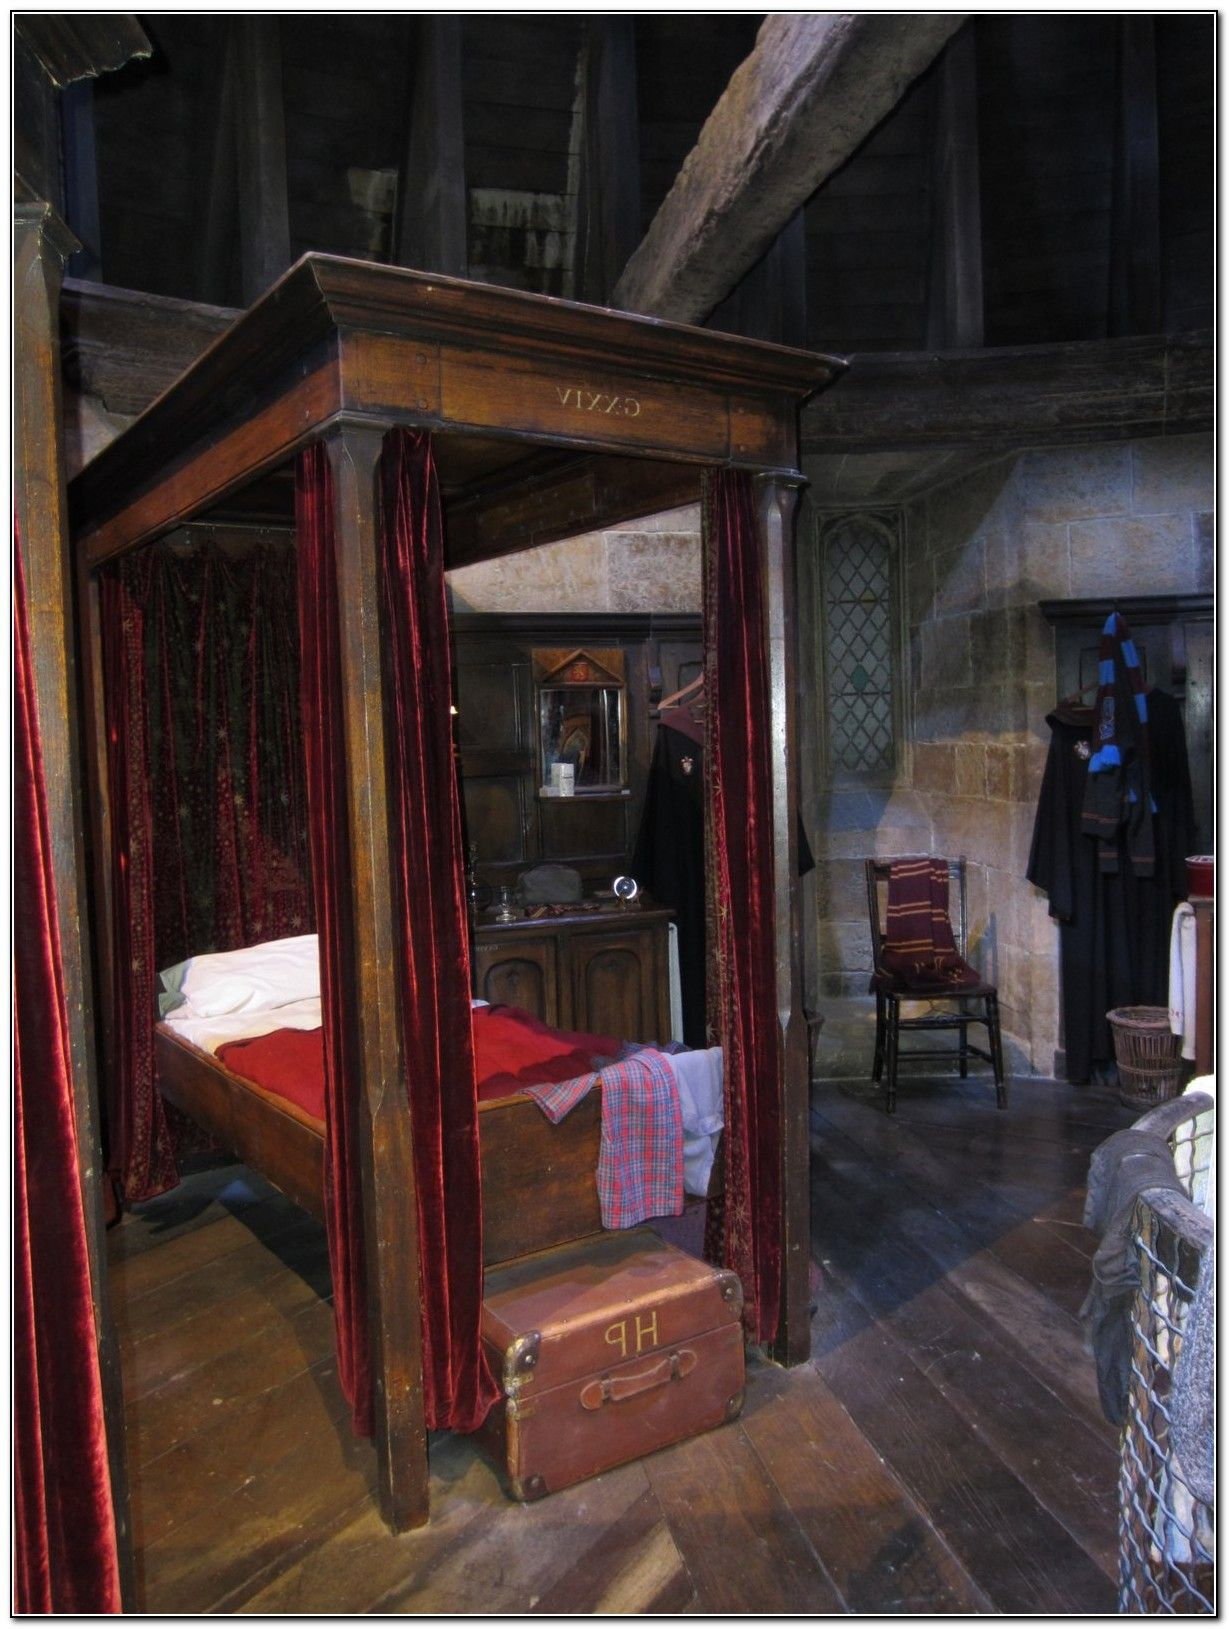 Harry Potter Furnature Four Poster Bed Harry Potter Beds Home Furniture Design Poster Bed Four Poster Bed Four Poster